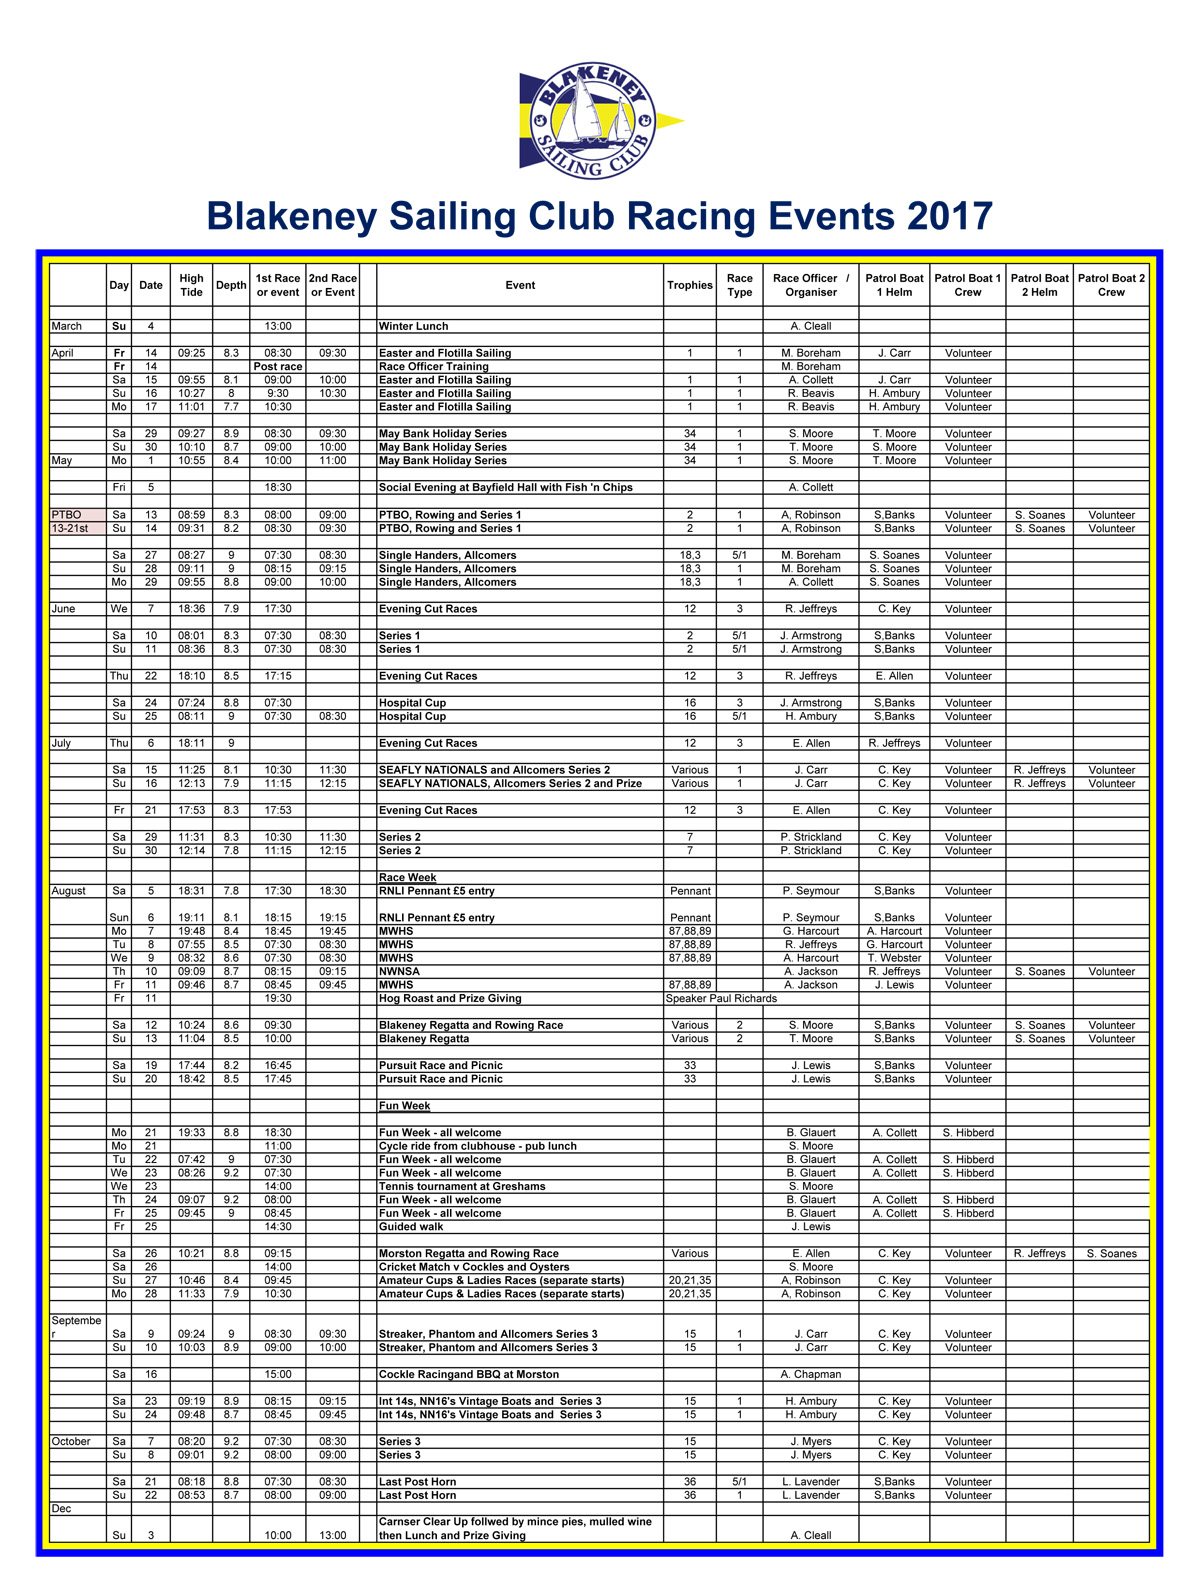 Blakeney Sailing Club Race Events 2017